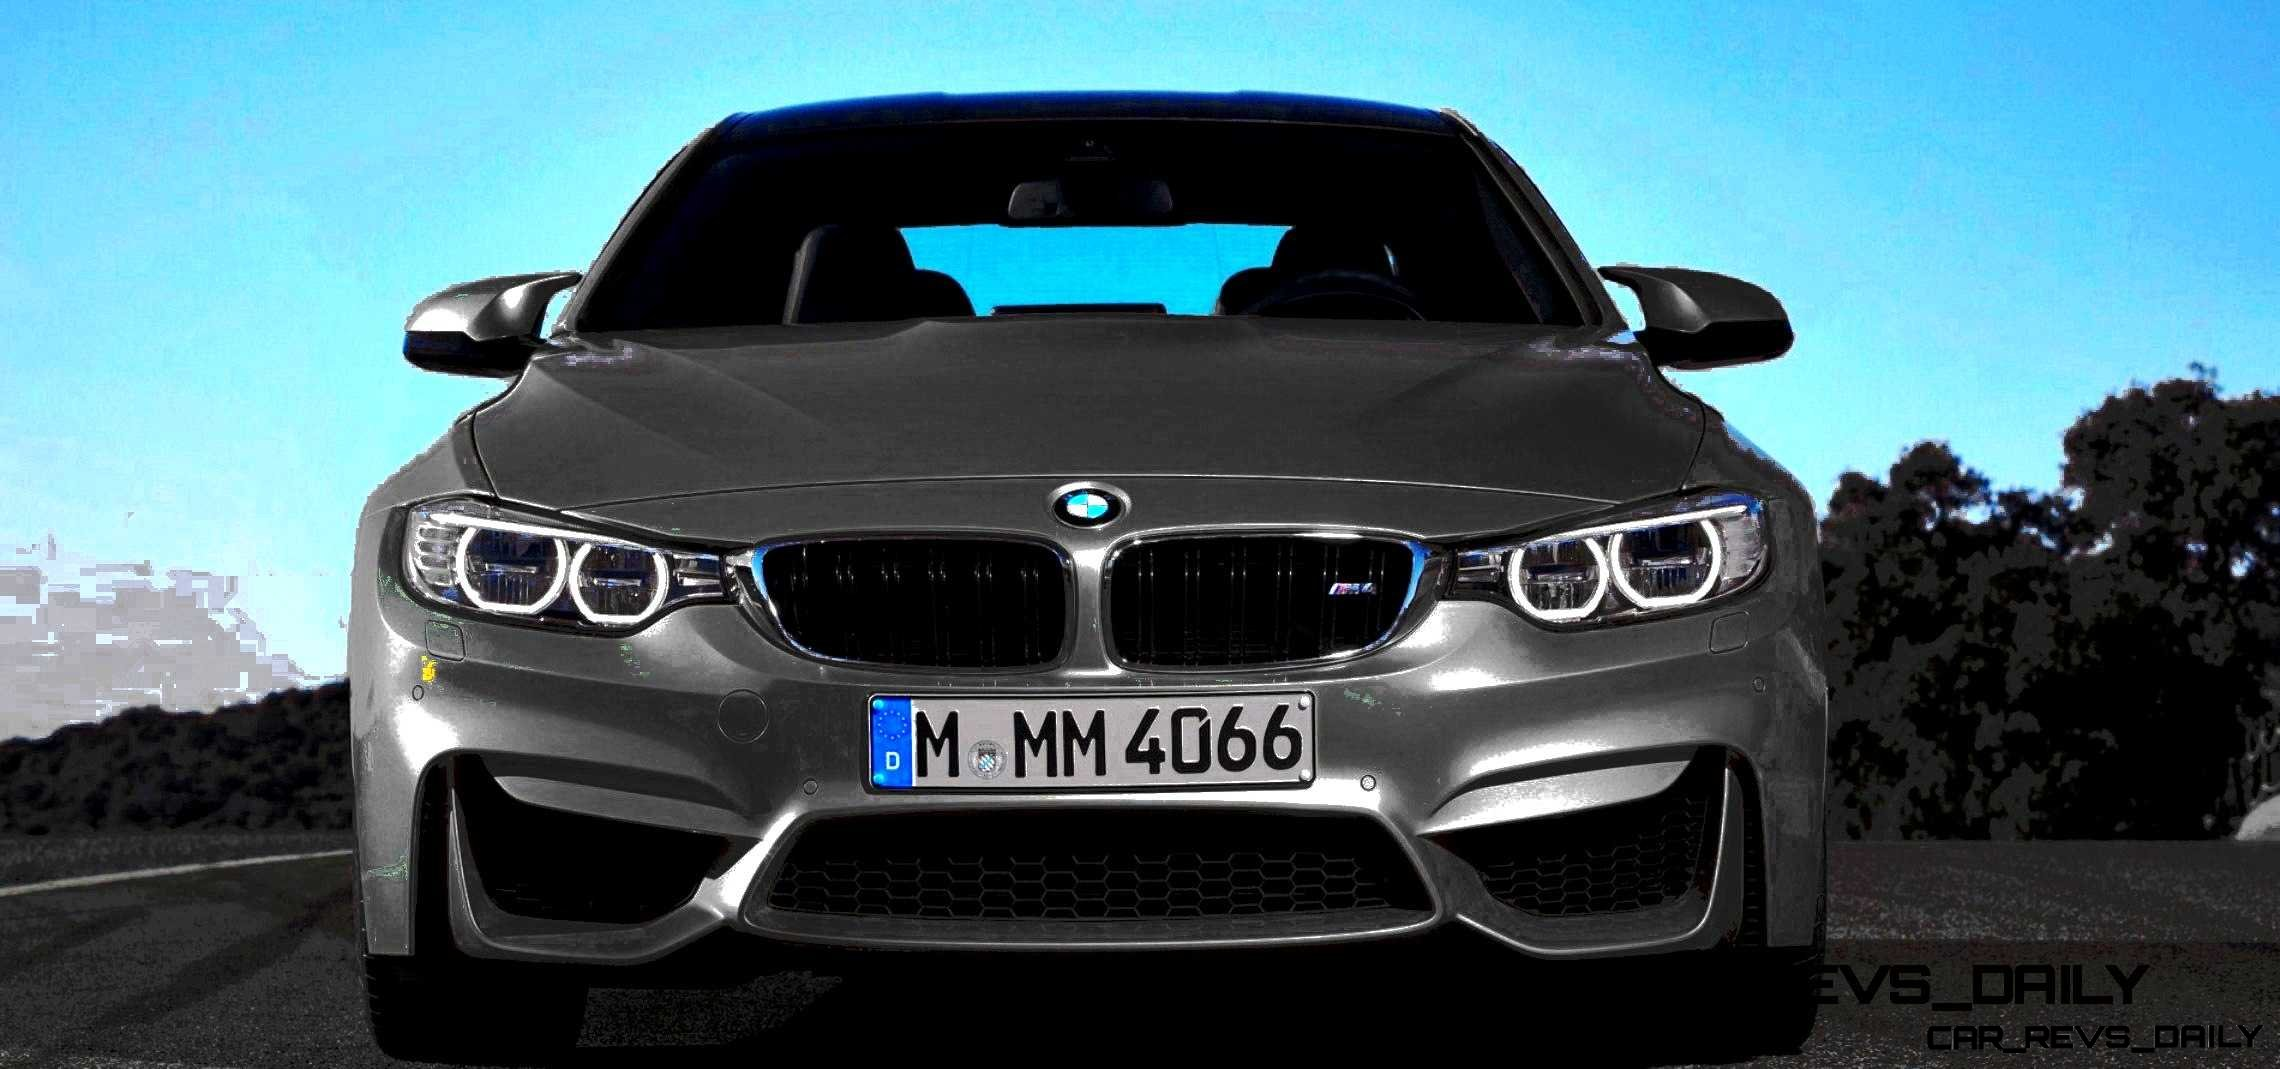 186mph-2014-BMW-M4-Screams-into-Focus-50darkgrey